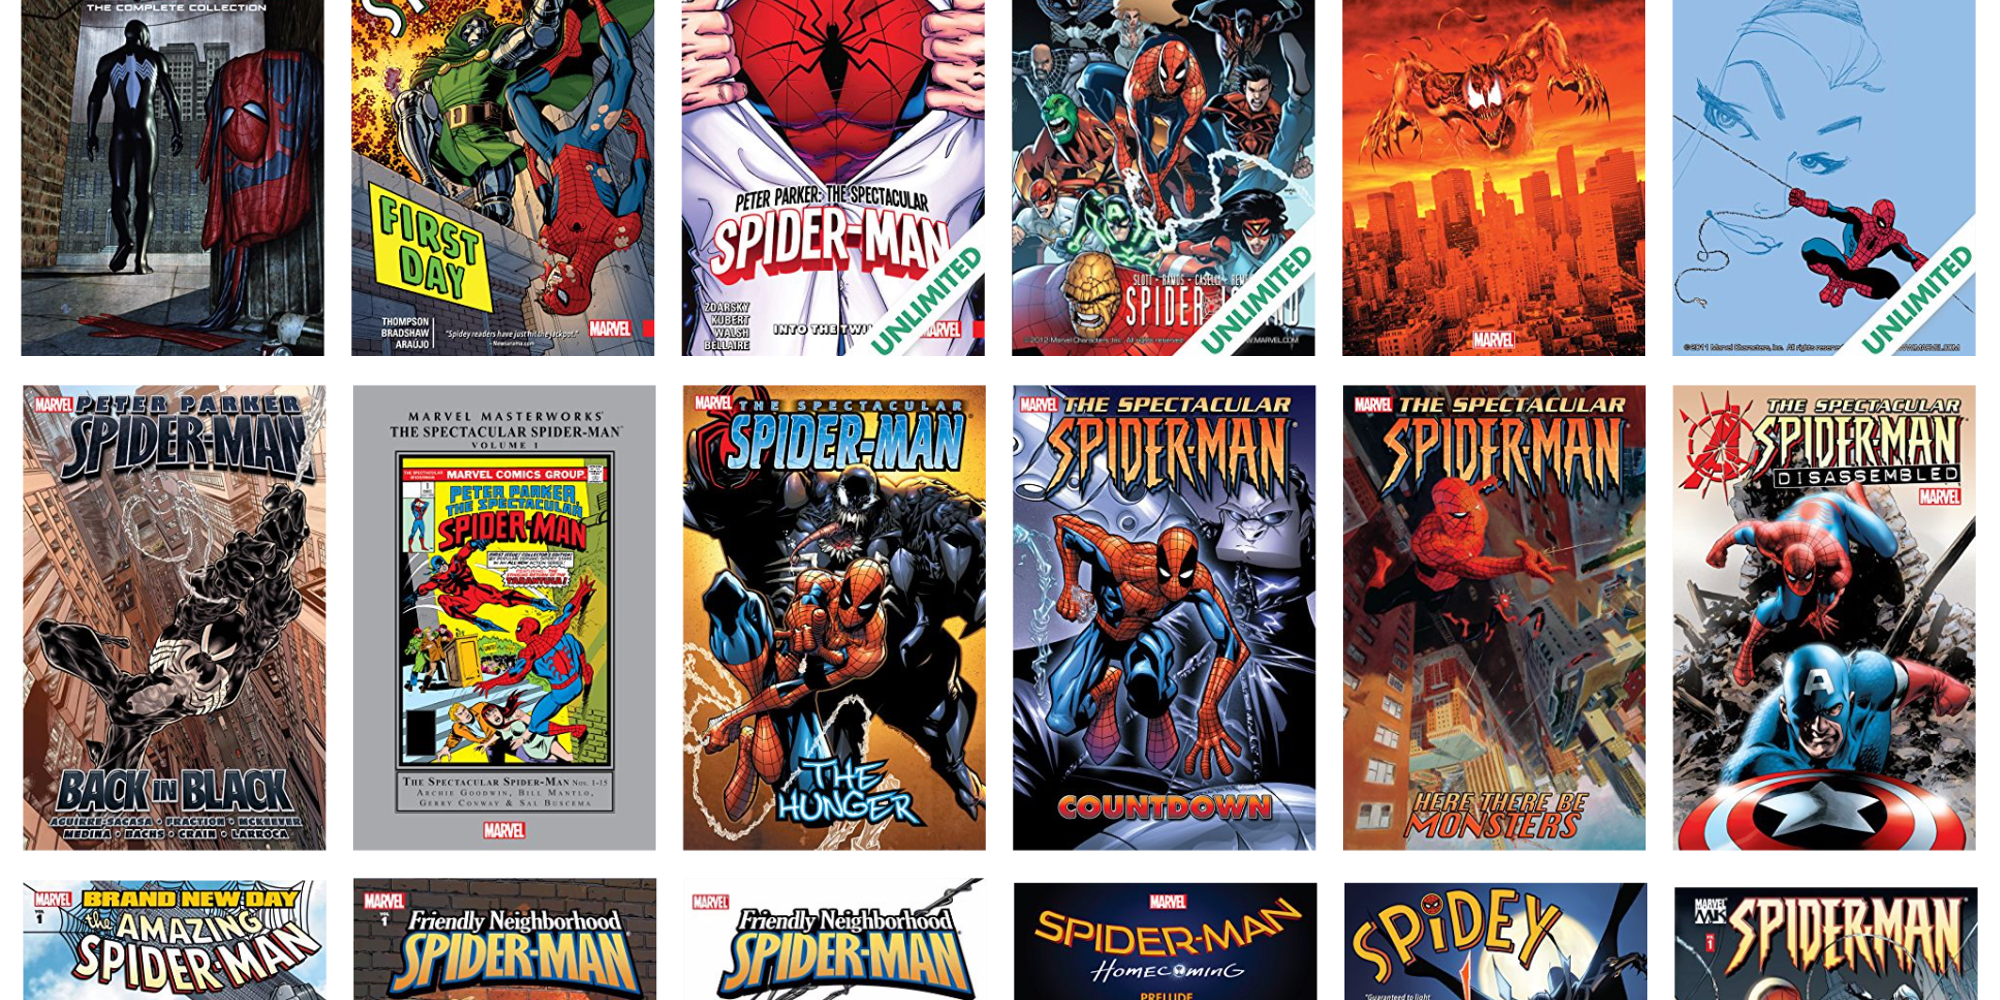 Our savings sense is tingling: ComiXology takes up to 67% off Spider-Man digital comics from $1